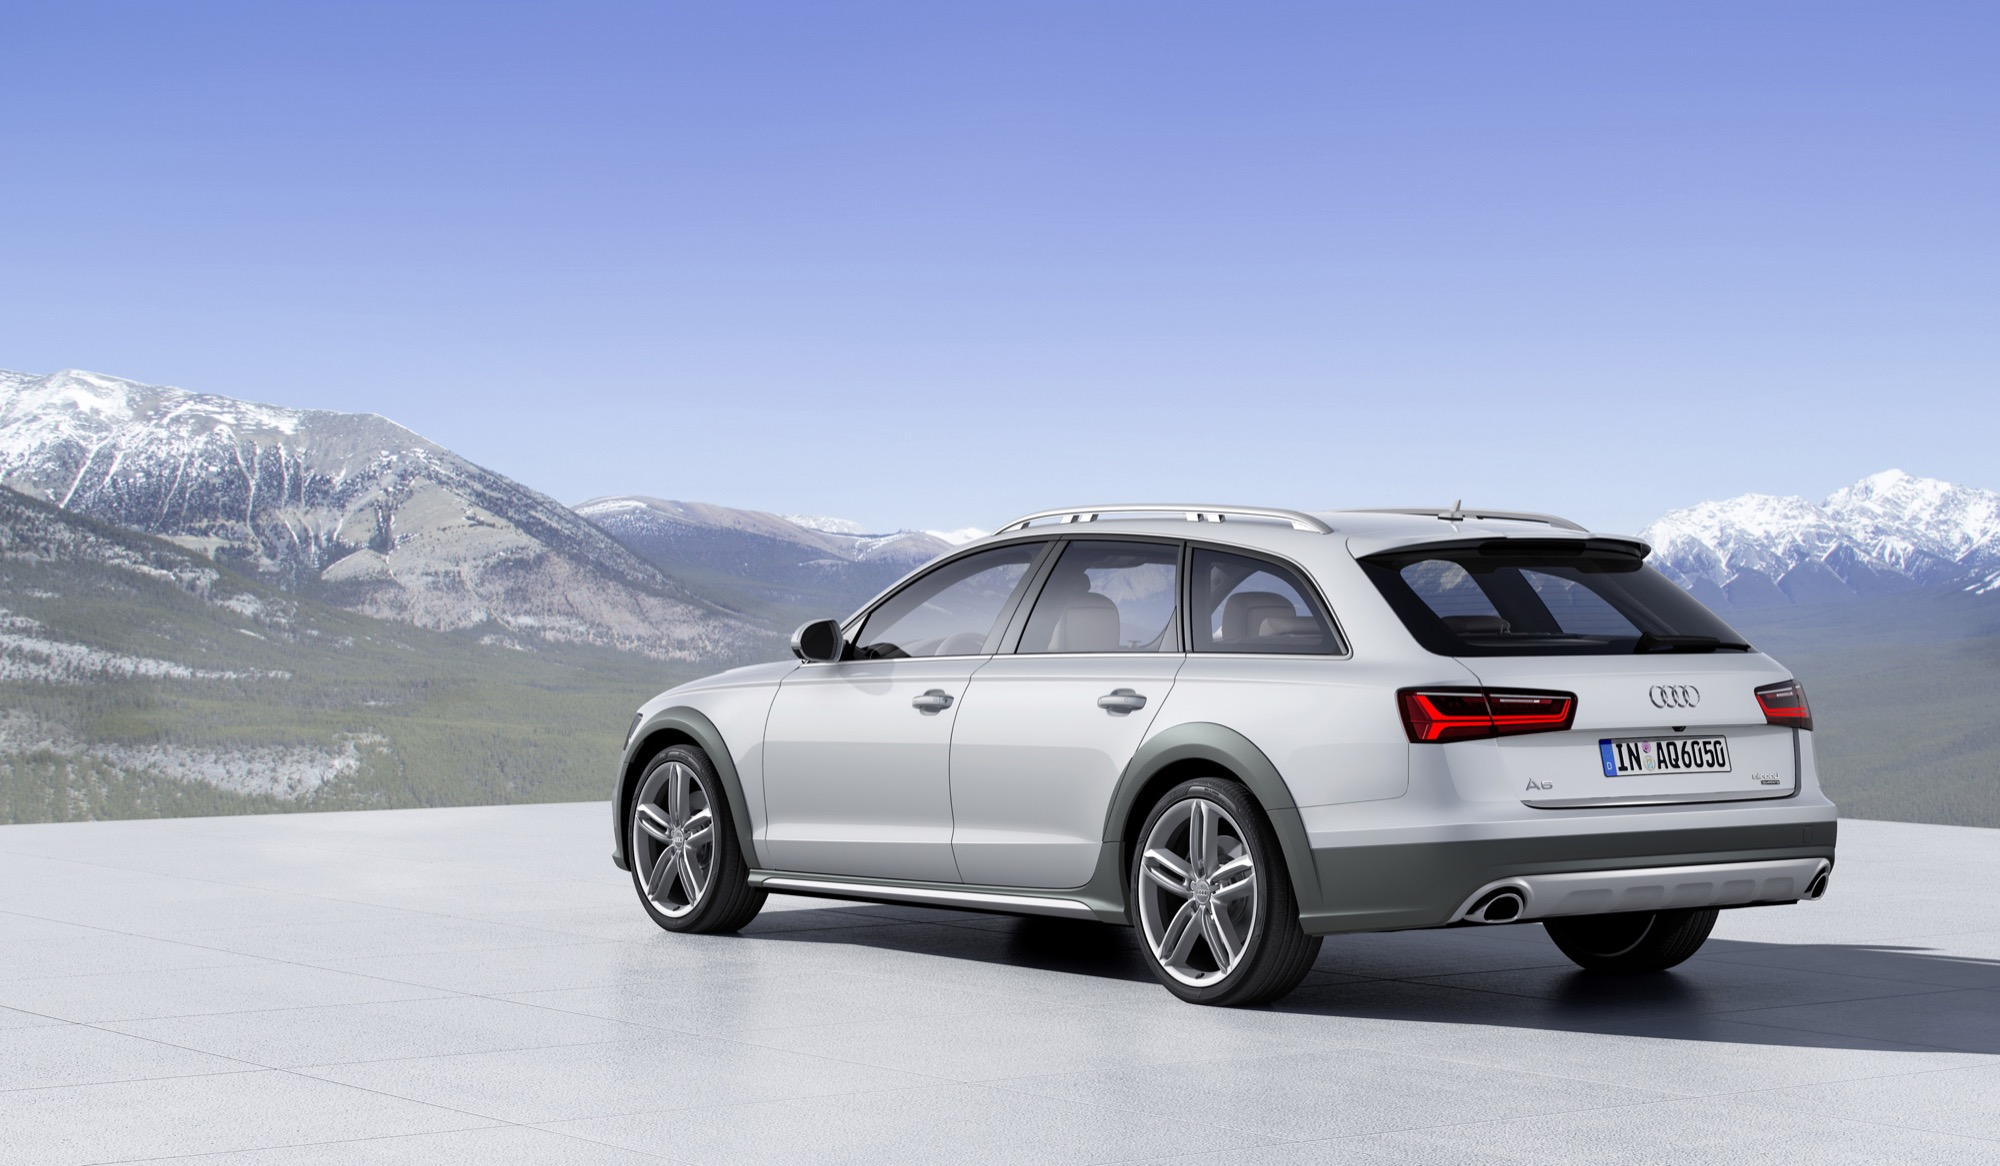 2015 audi a6 allroad priced from 111 900 in australia. Black Bedroom Furniture Sets. Home Design Ideas